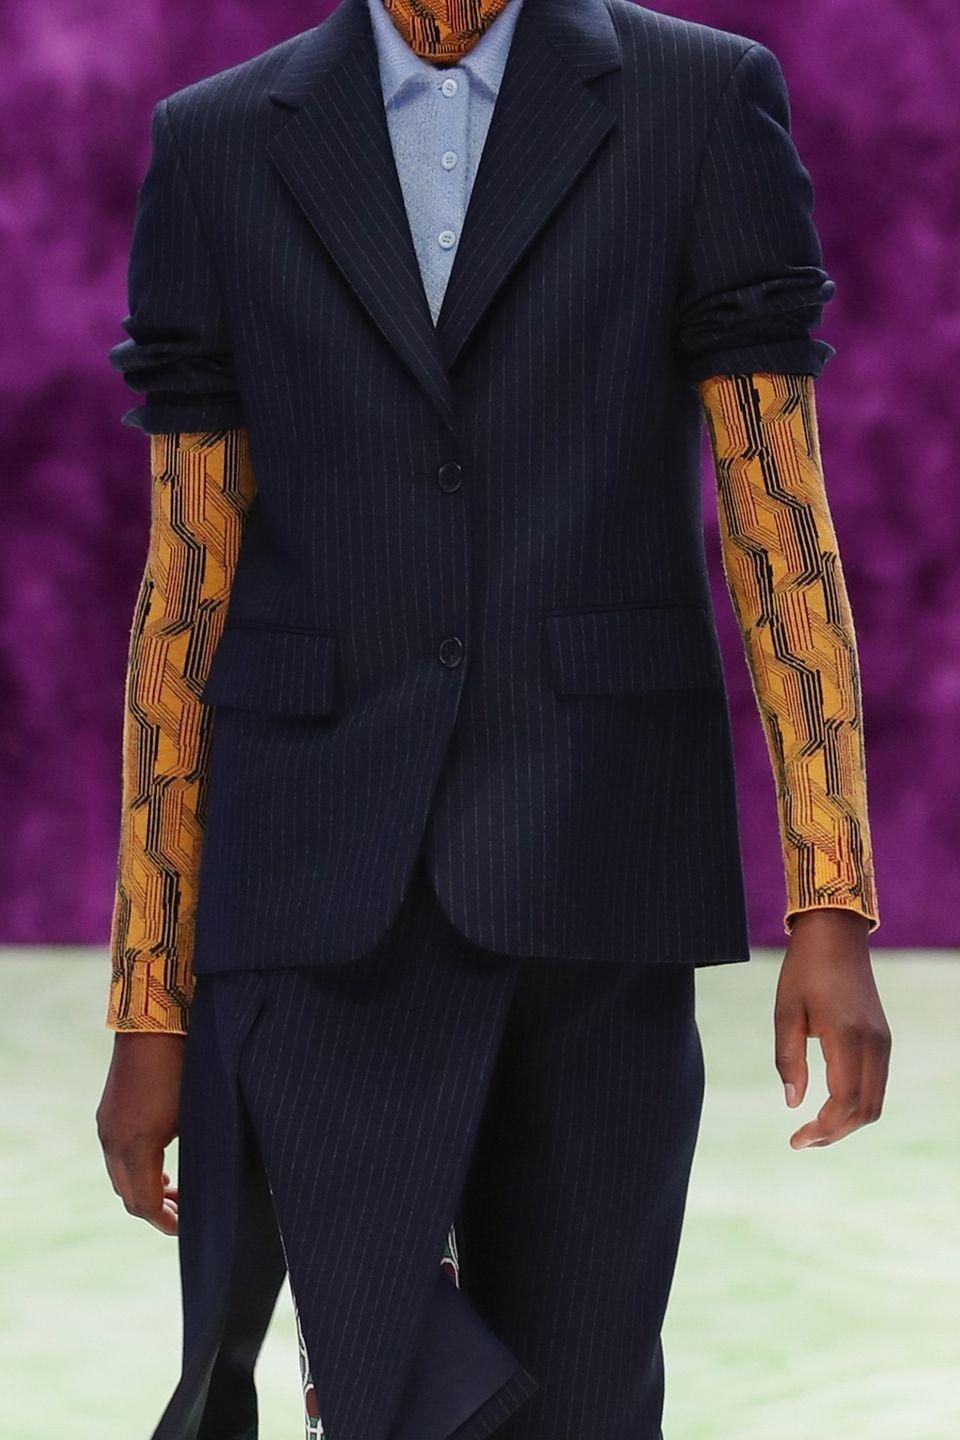 <p>Rolling up your blazer creates a mix-match pattern reveal and gives your whole look an air of '80s nonchalant cool. </p><p><strong>Insider tip:</strong> Use a comfortably fitting rubber band over the suit sleeve and then push it up to the desired place. The rubber band will help keep the sleeve up—just make sure to hide it in the folds.</p><p><em>Pictured: Prada</em></p>